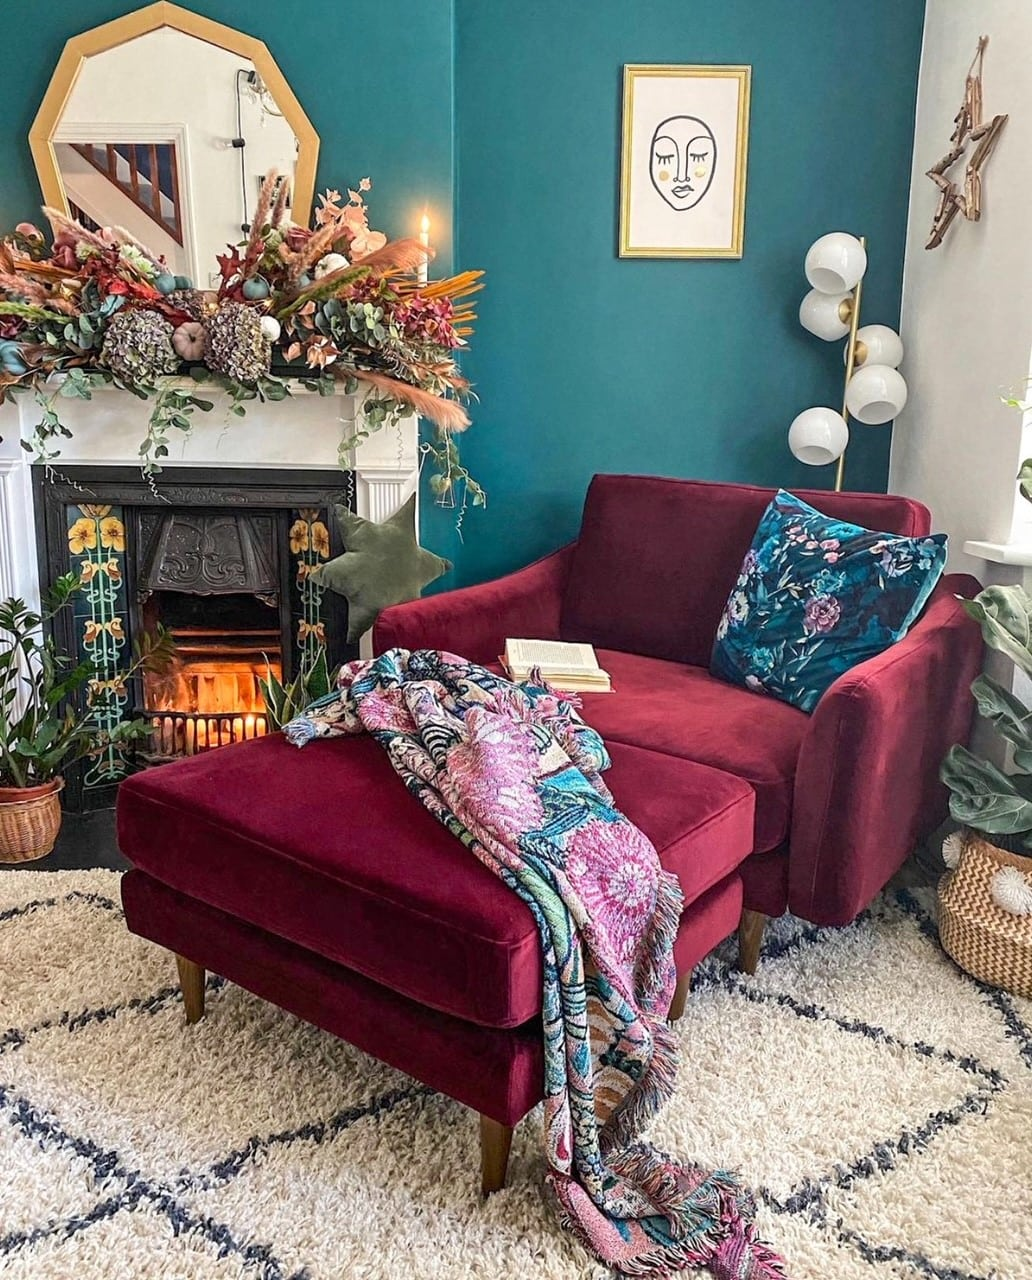 red velvet sofa, green walls and fireplace in the living room